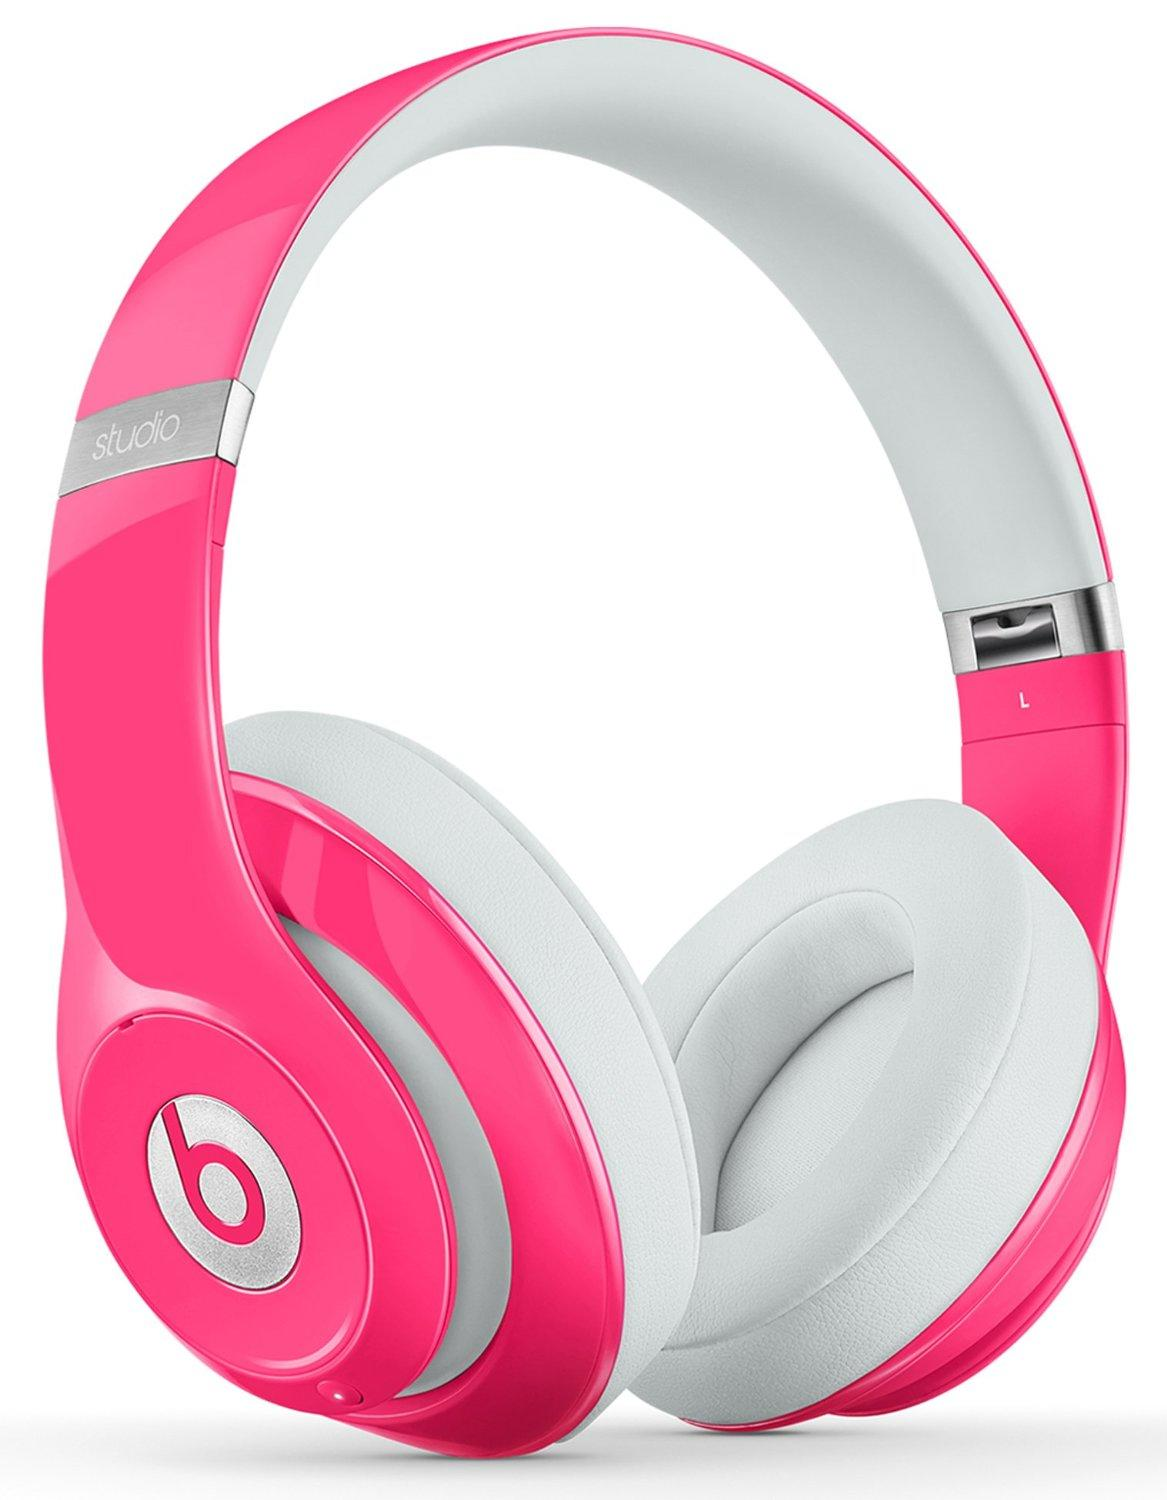 BEATS BY DR.DRE STUDIO 2.0 OVER-EAR HEADPHONES - PINK